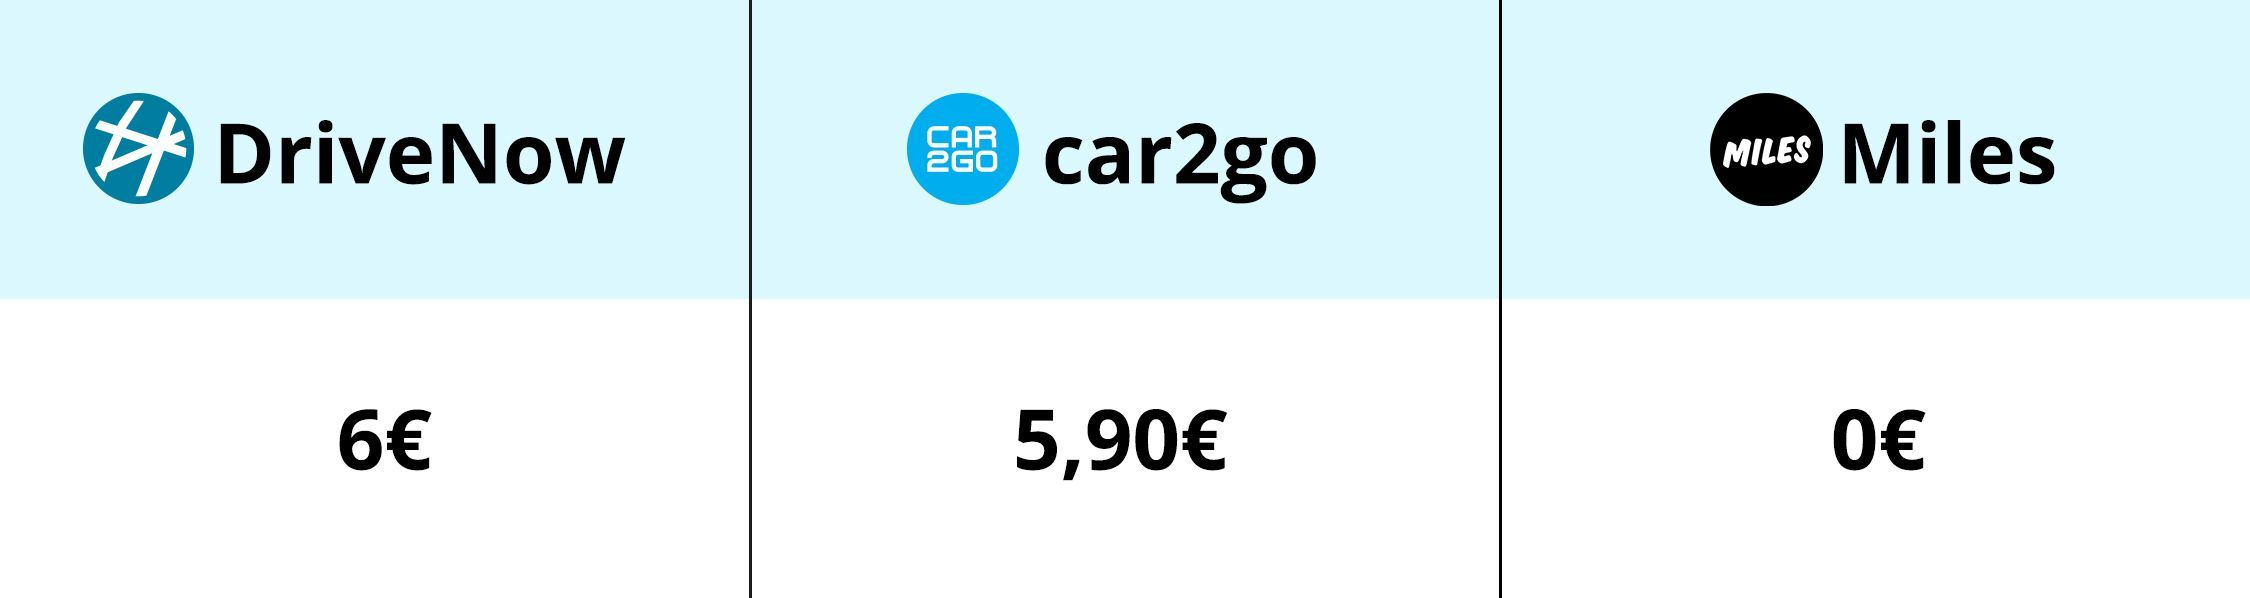 airport-prices-carsharing berlin airport